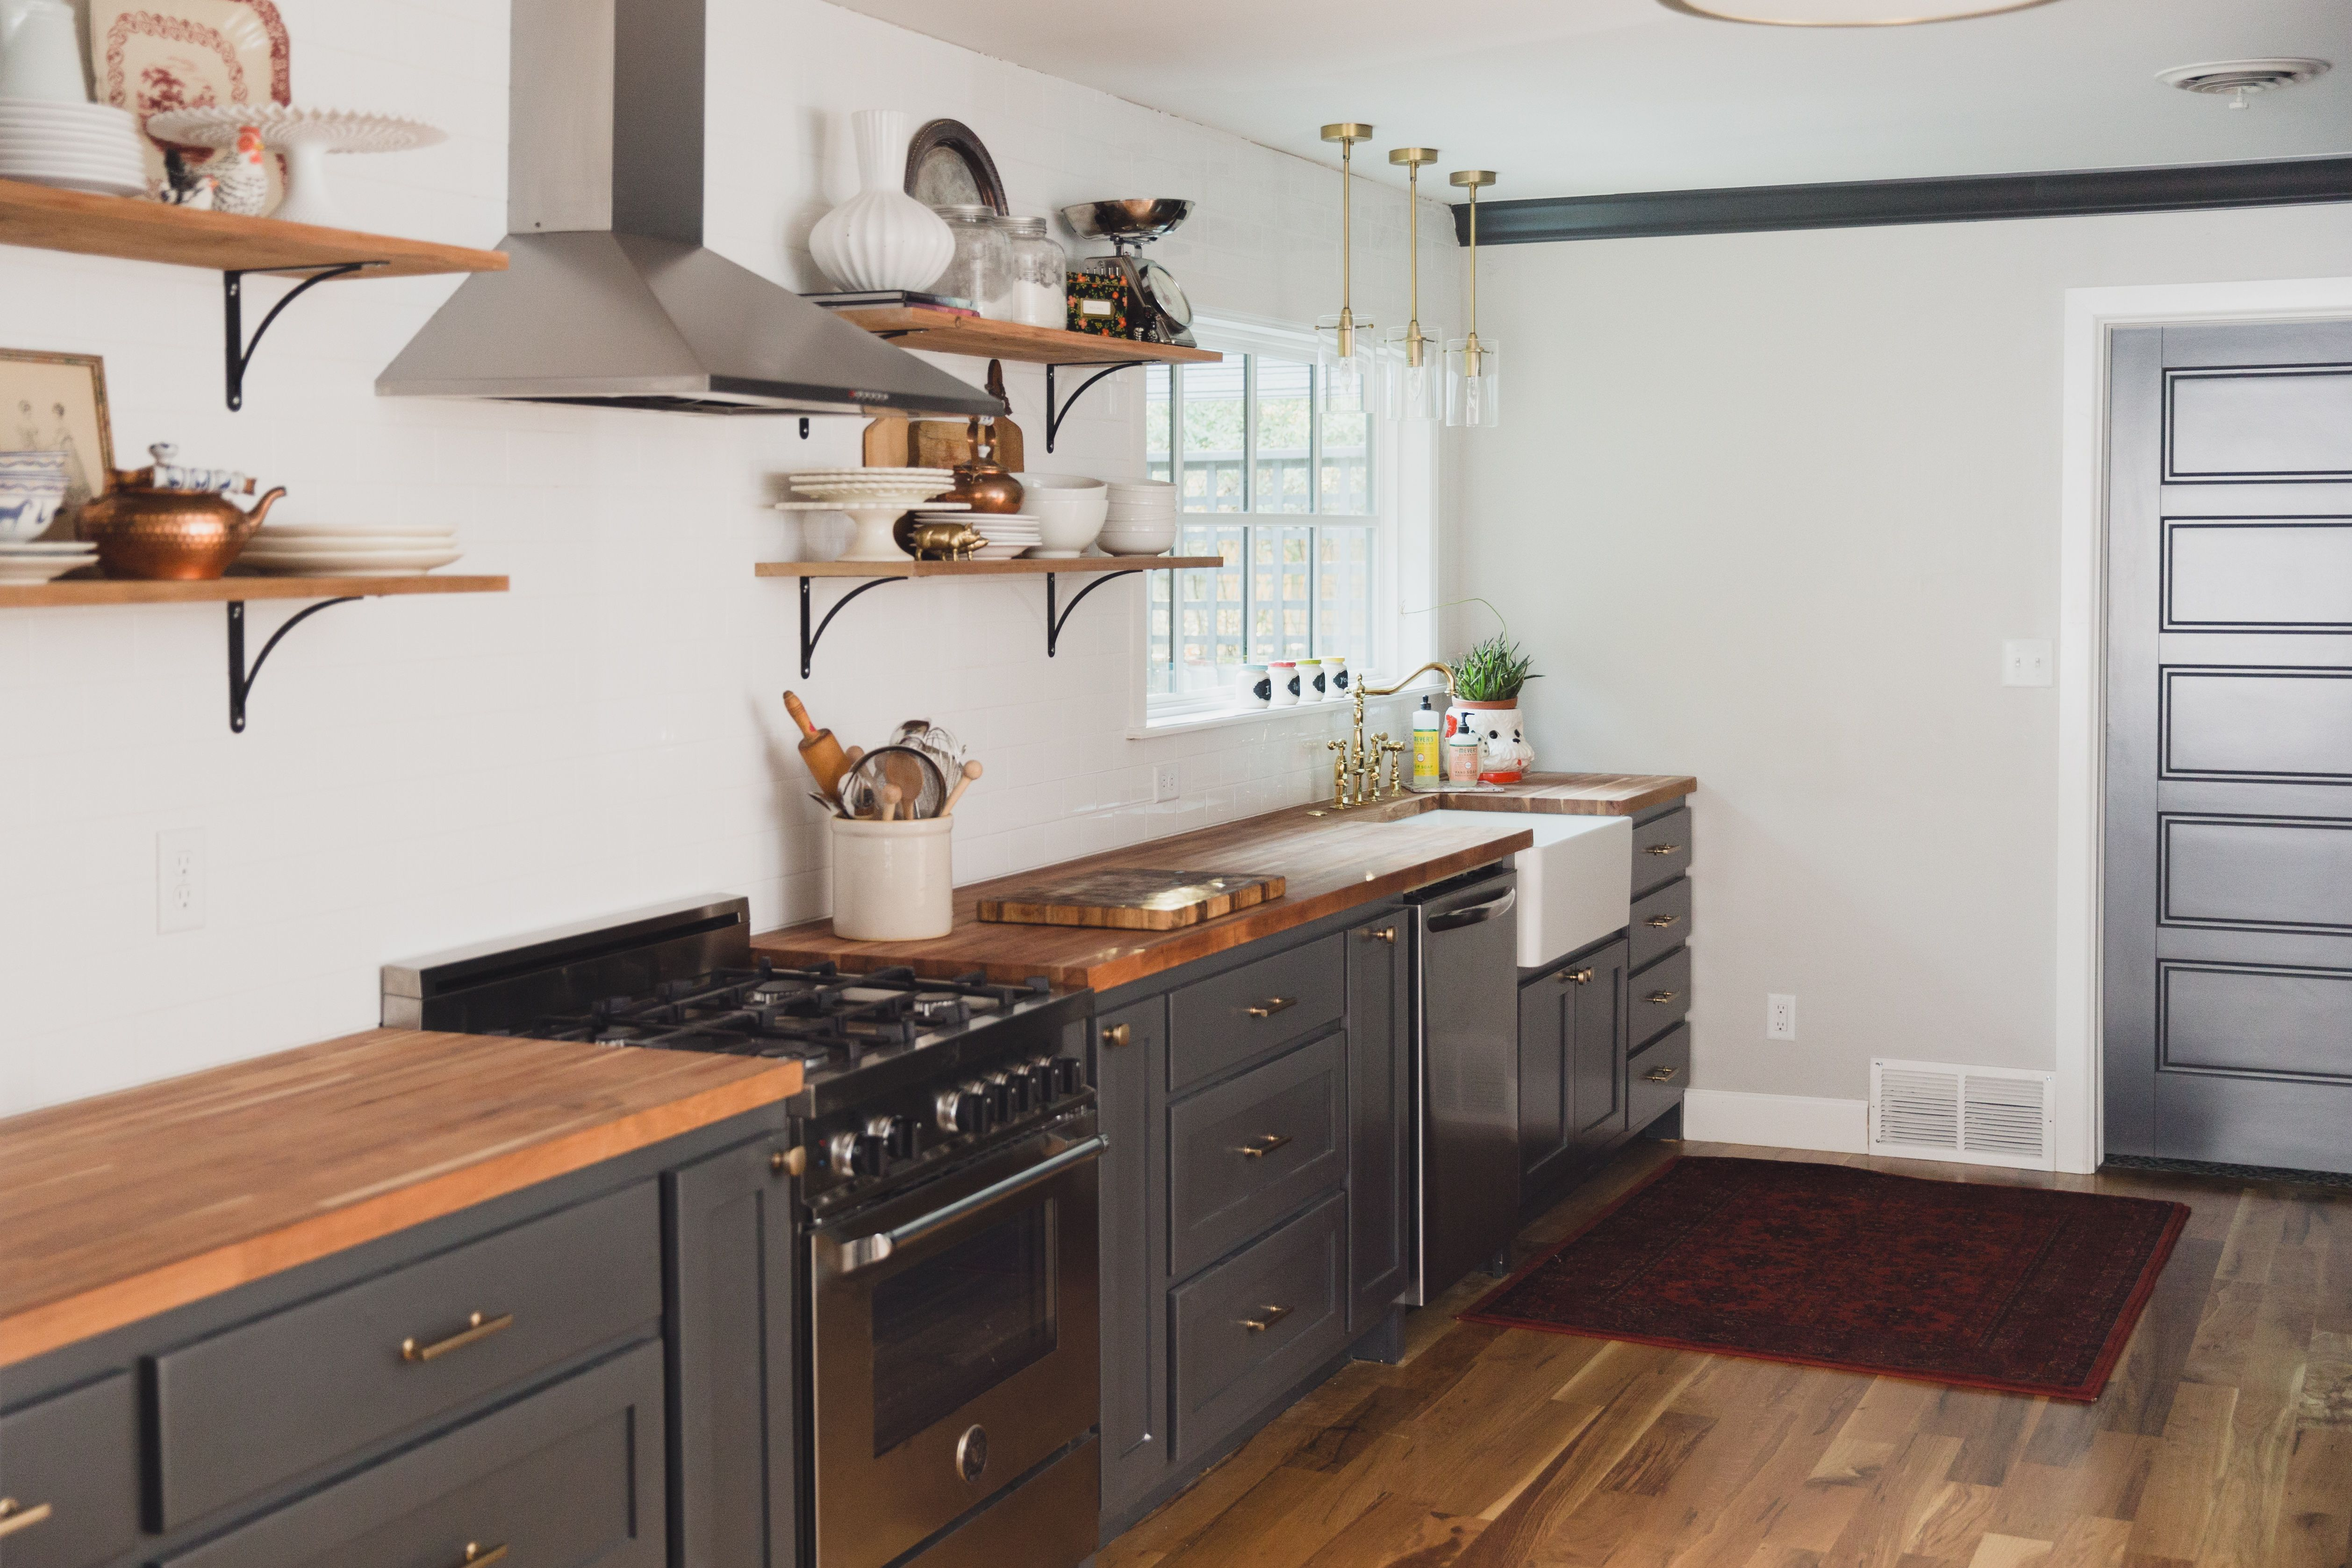 Our Home A Year In Review Home, Farmhouse sink kitchen